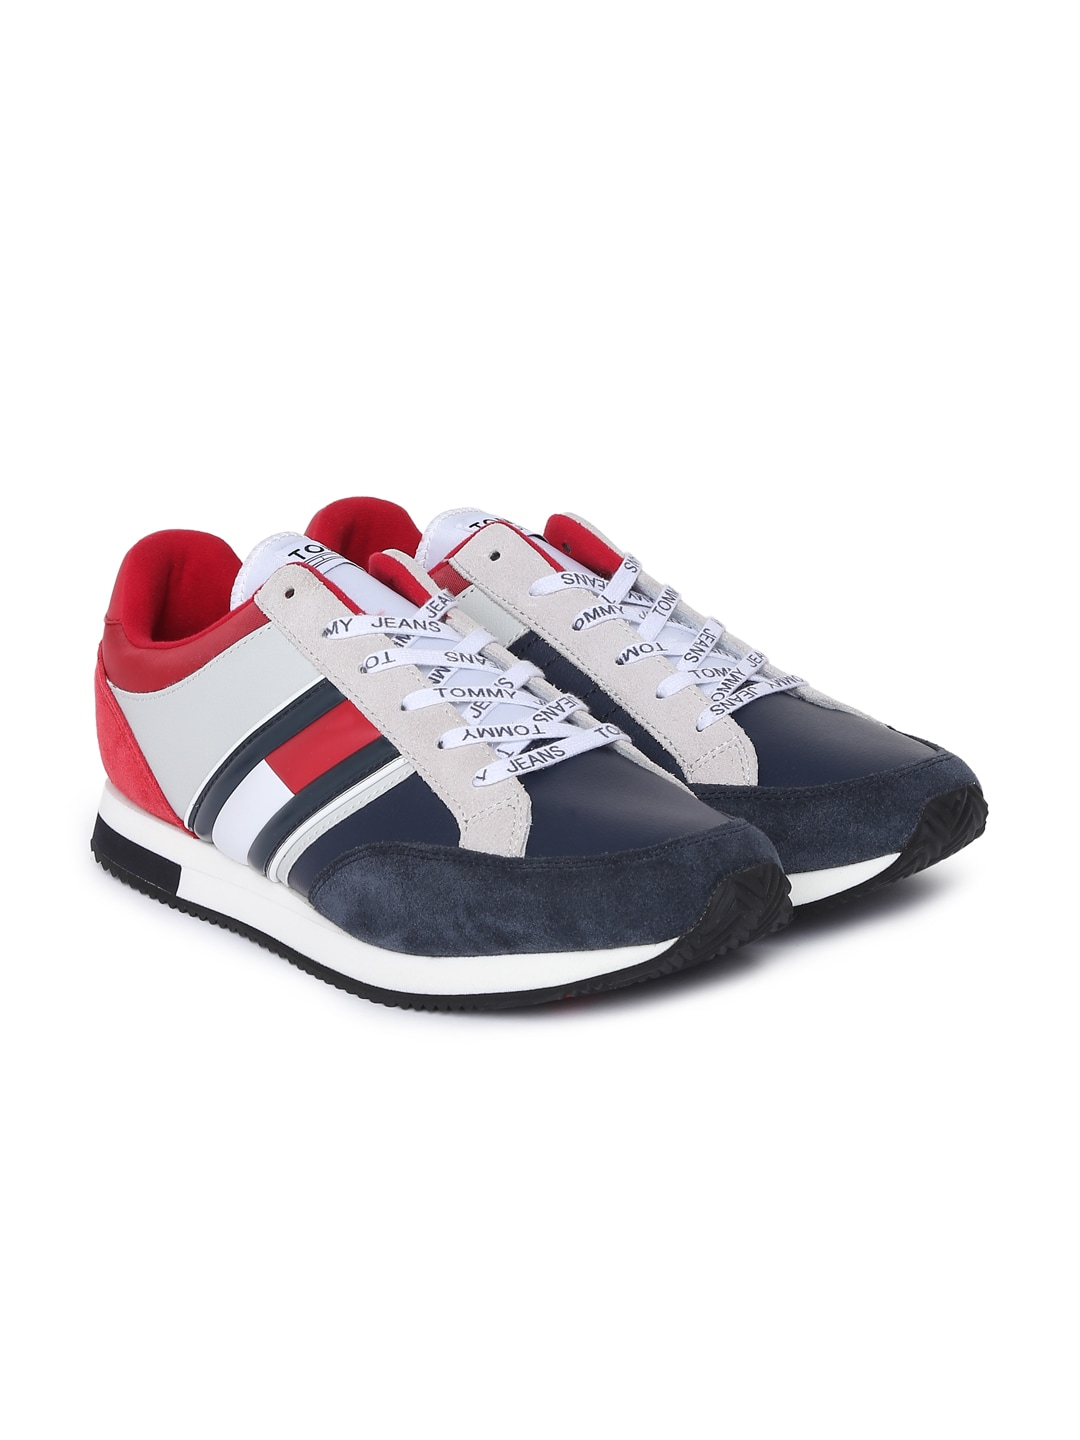 405b8cce4be387 Tommy Hilfiger Men Navy Blue   Red Sneakers